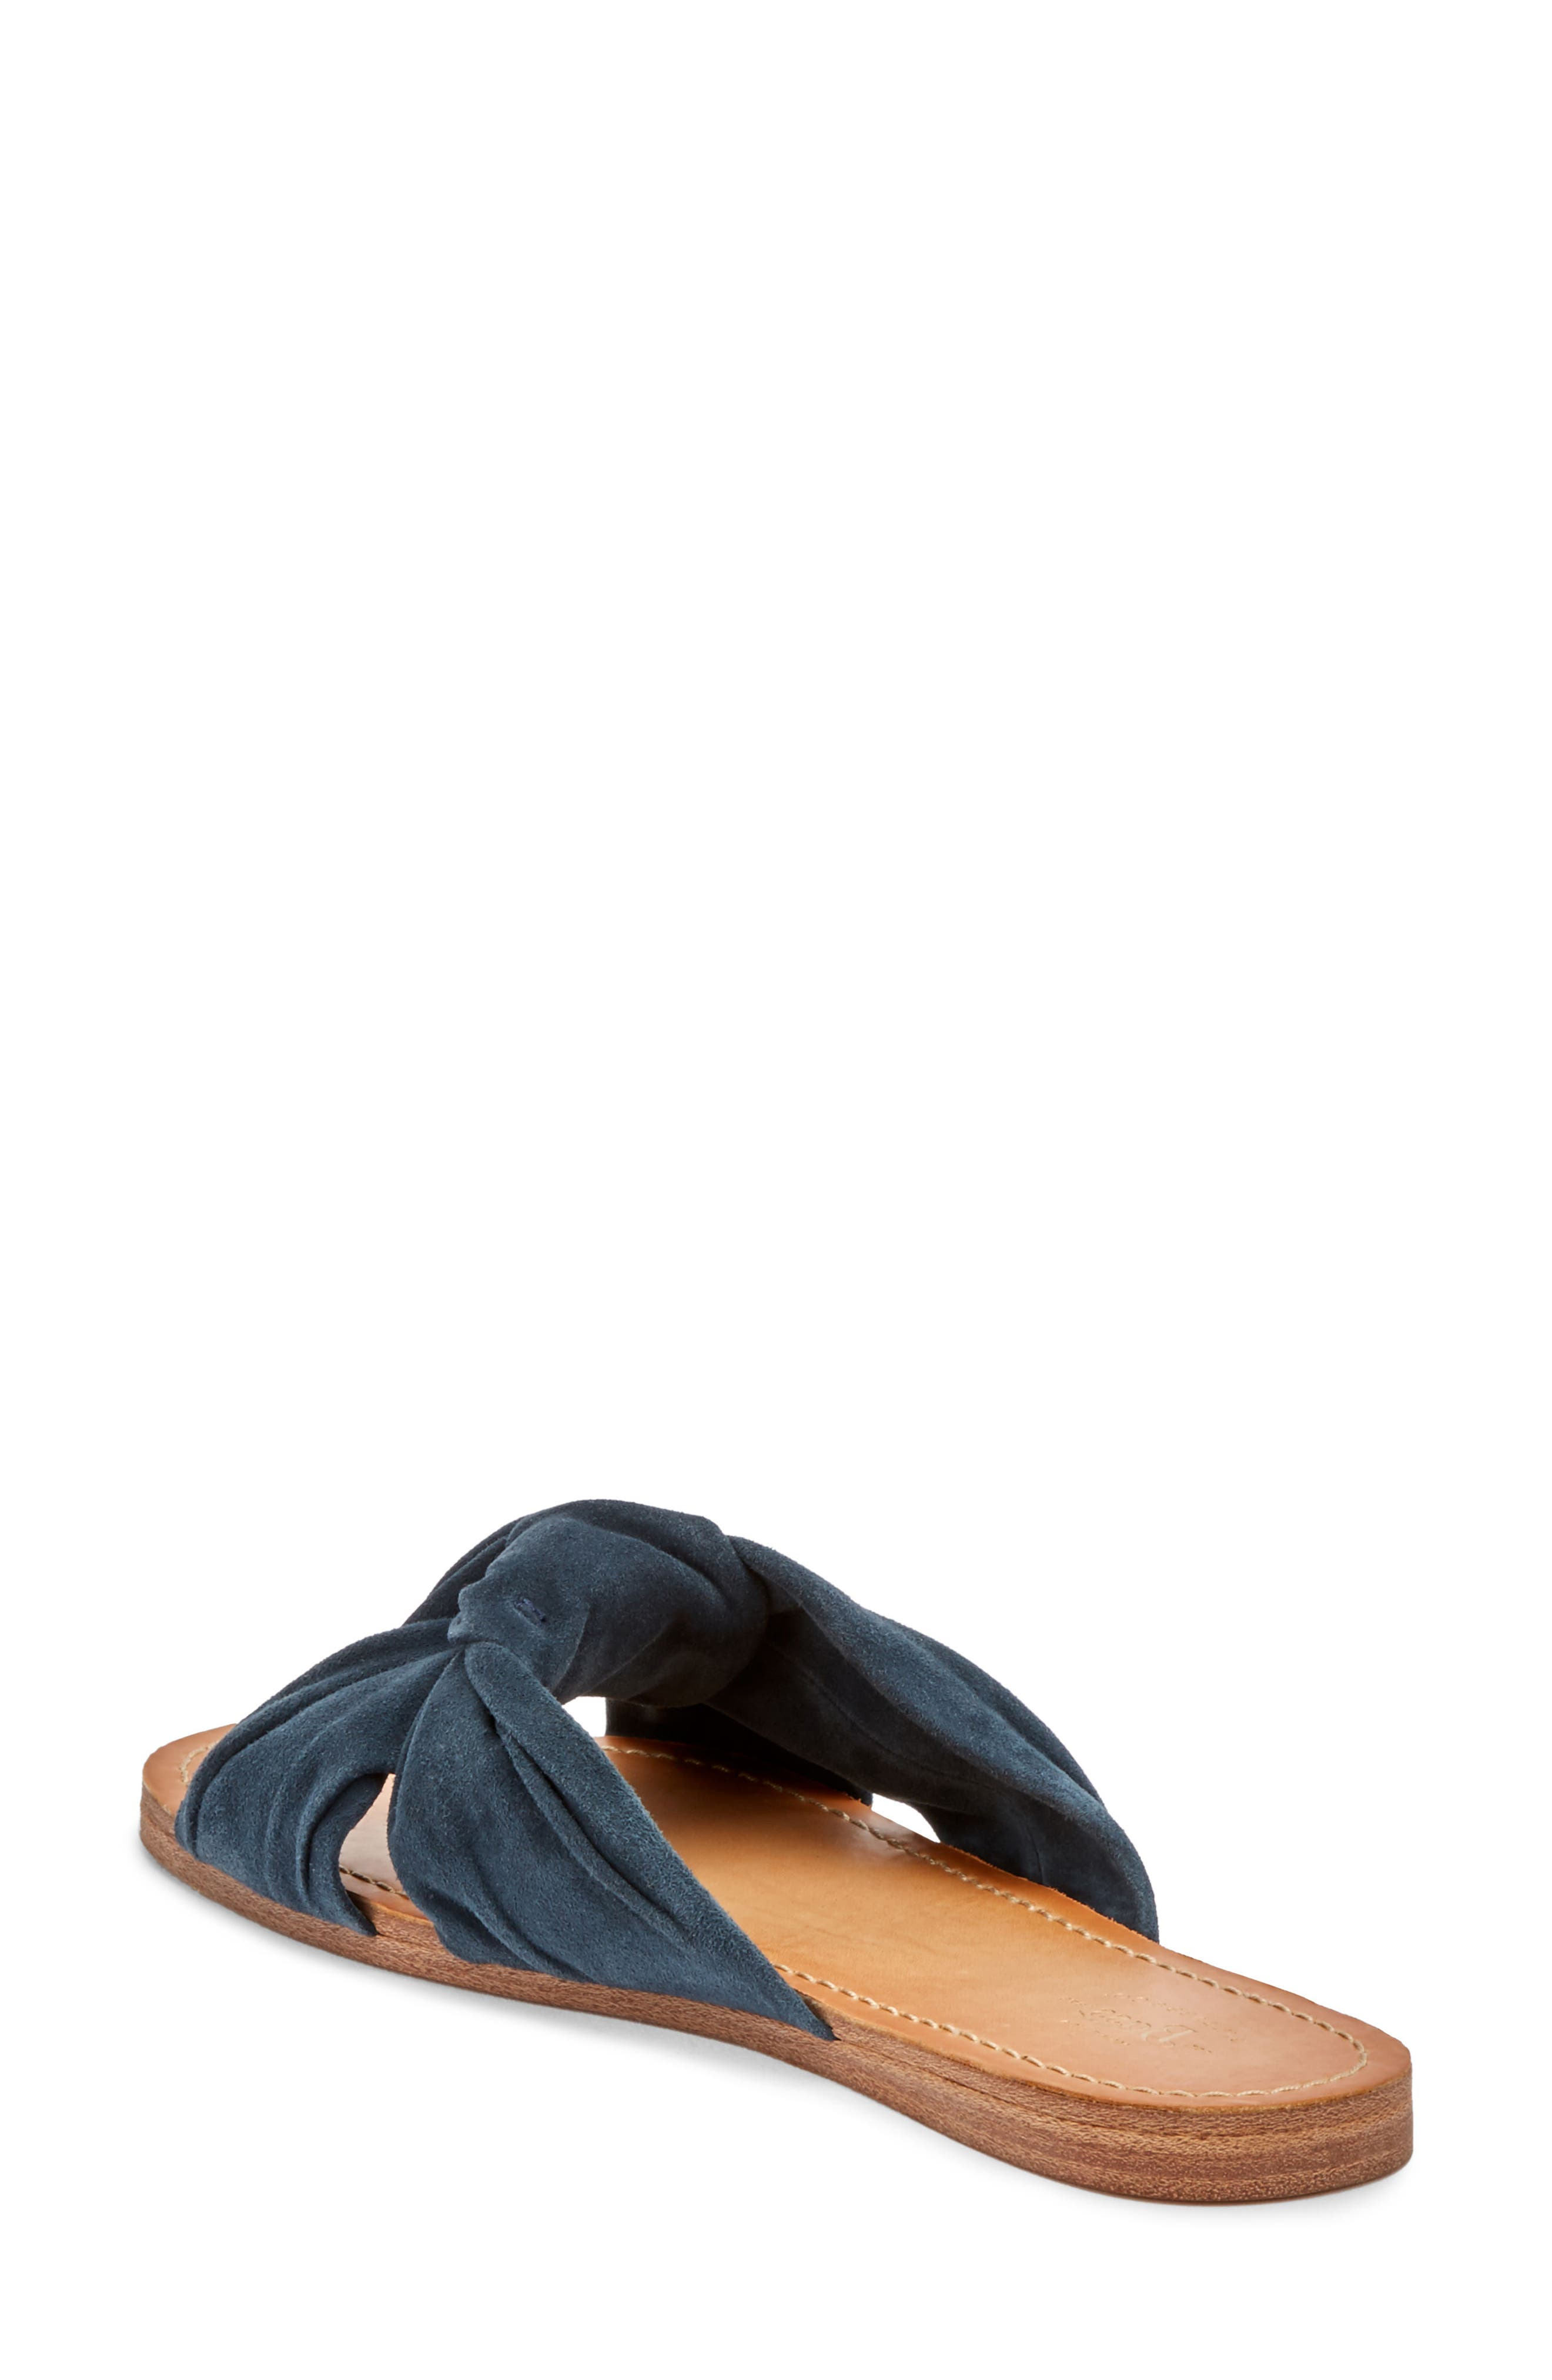 Sophie Knotted Bow Sandal,                             Alternate thumbnail 2, color,                             Navy Suede